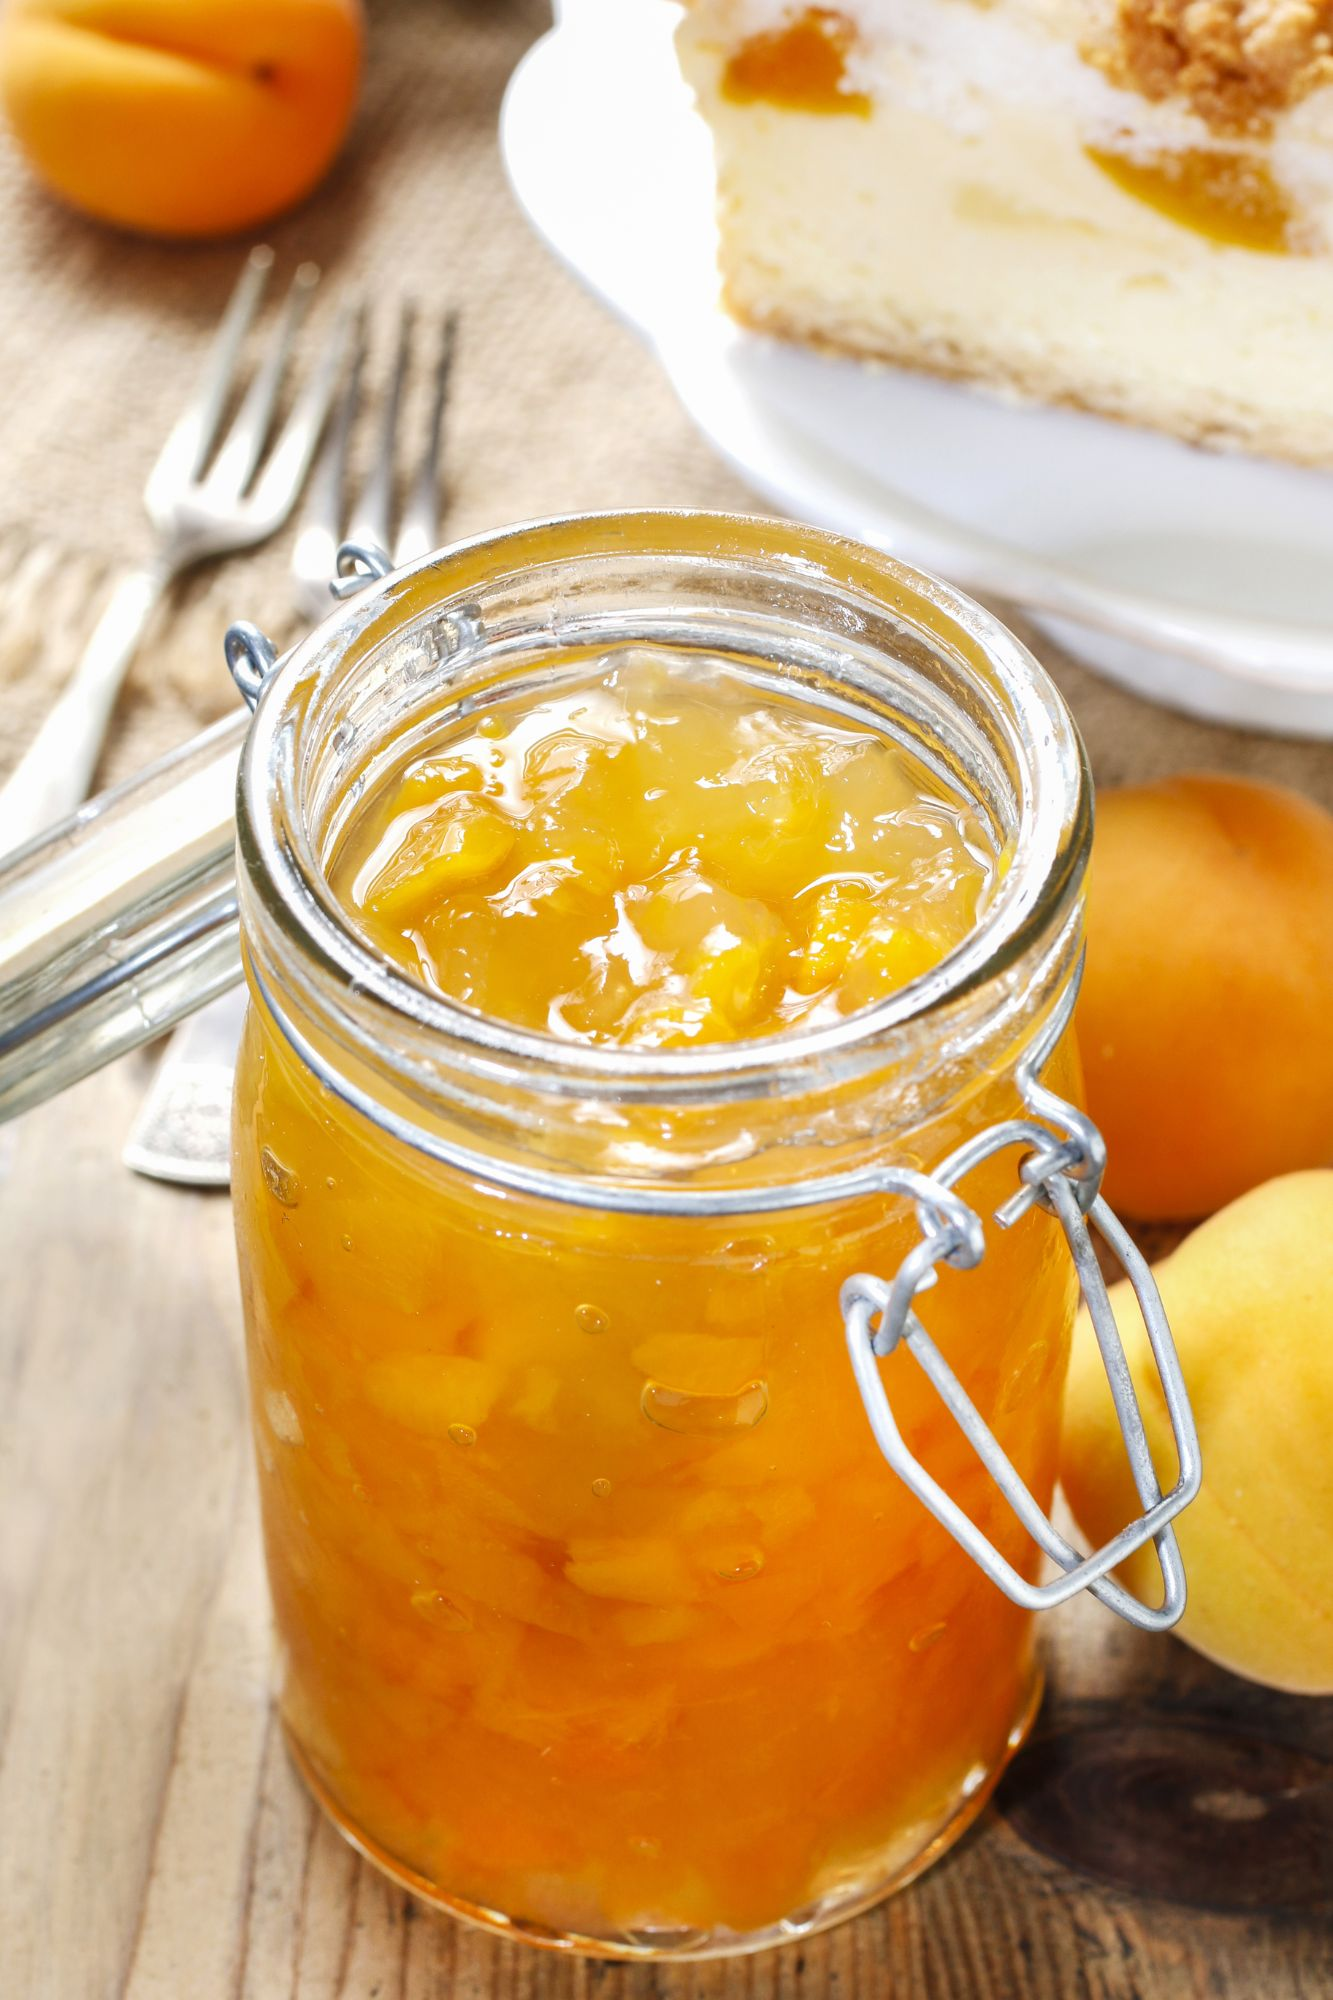 Marmalade Making Resources